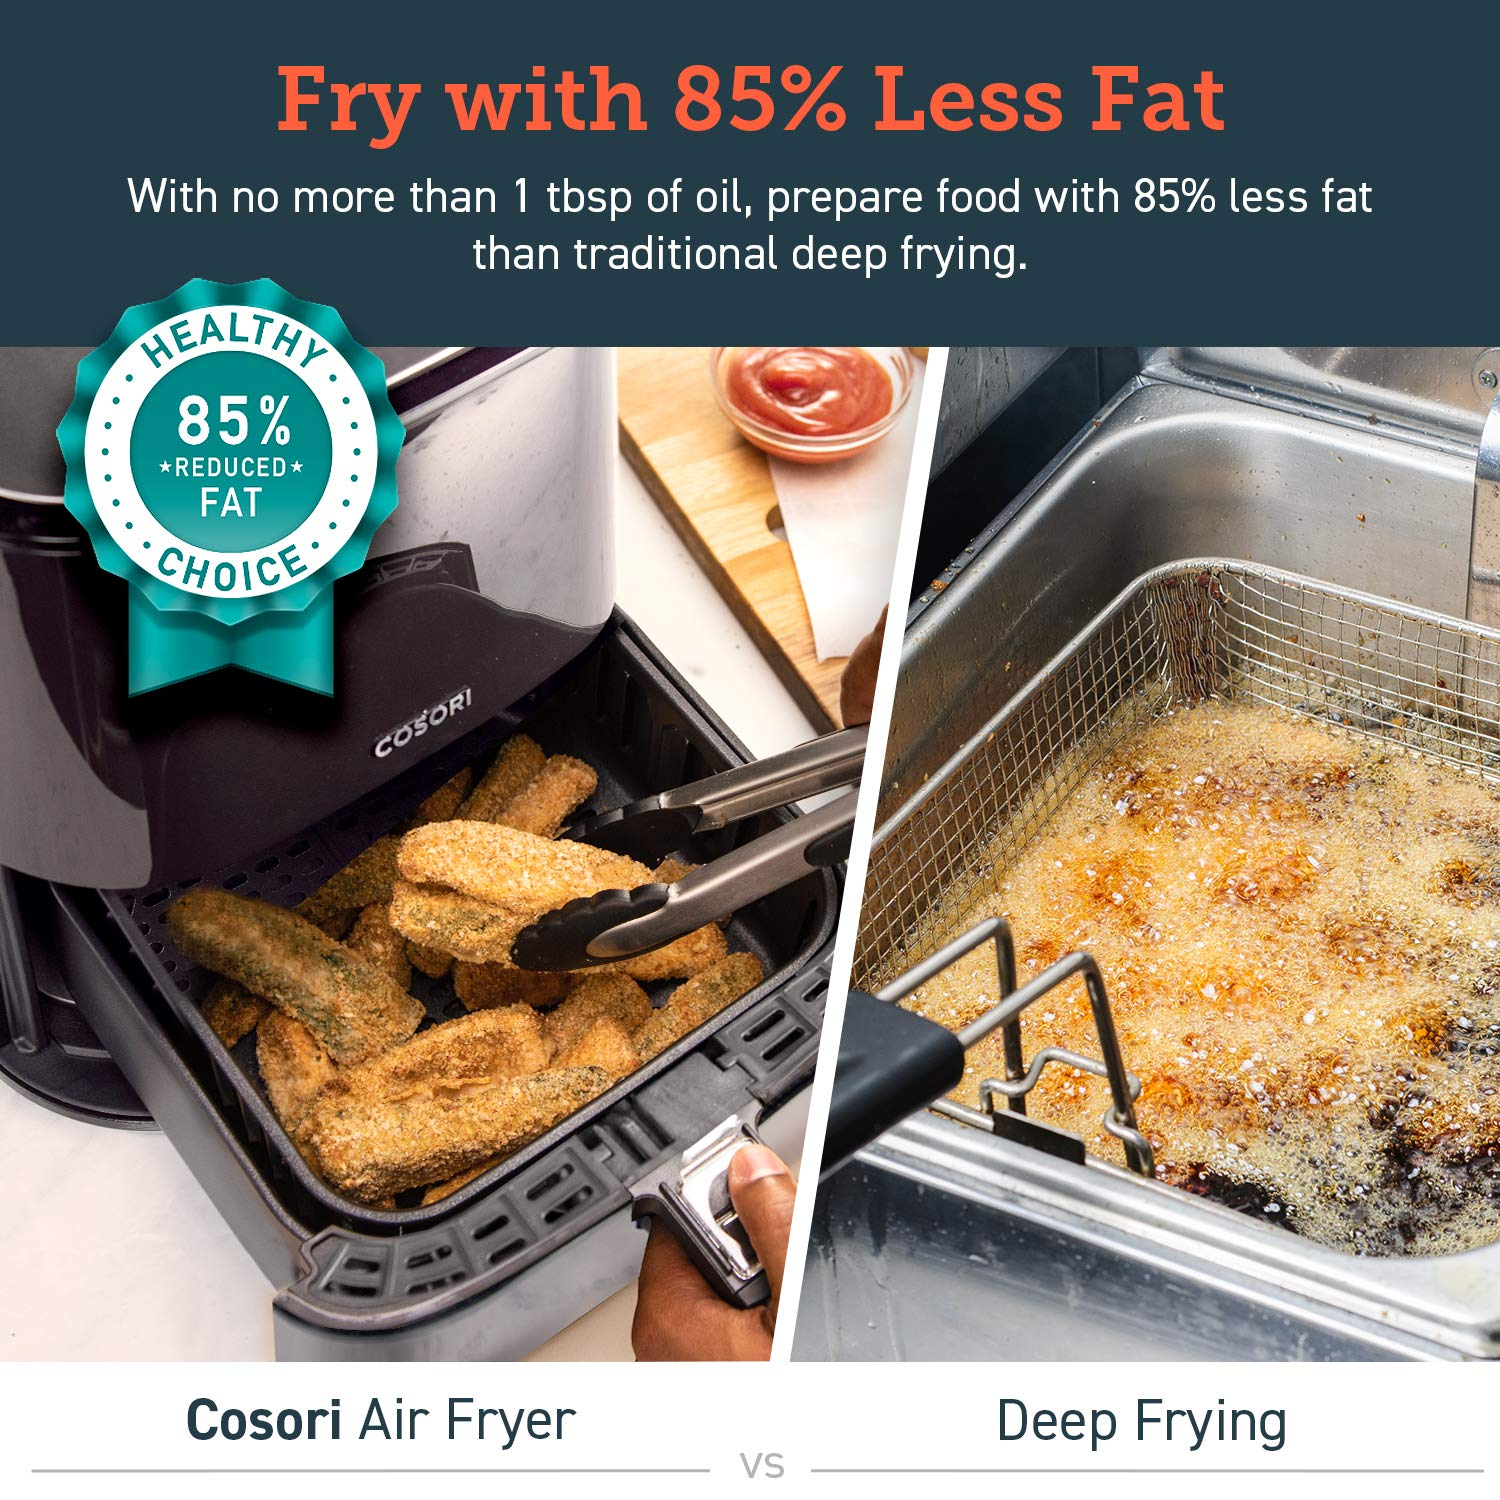 COSORI Stainless Steel Air Fryer (100 Recipes, Rack & 5 Skewers), 5.8Qt Large Air Fryers XL Oven Oilless Cooker, Preheat/Alarm Reminder, 9 Presets, Nonstick Basket, 2-Year Warranty, ETL/UL Listed by COSORI (Image #7)